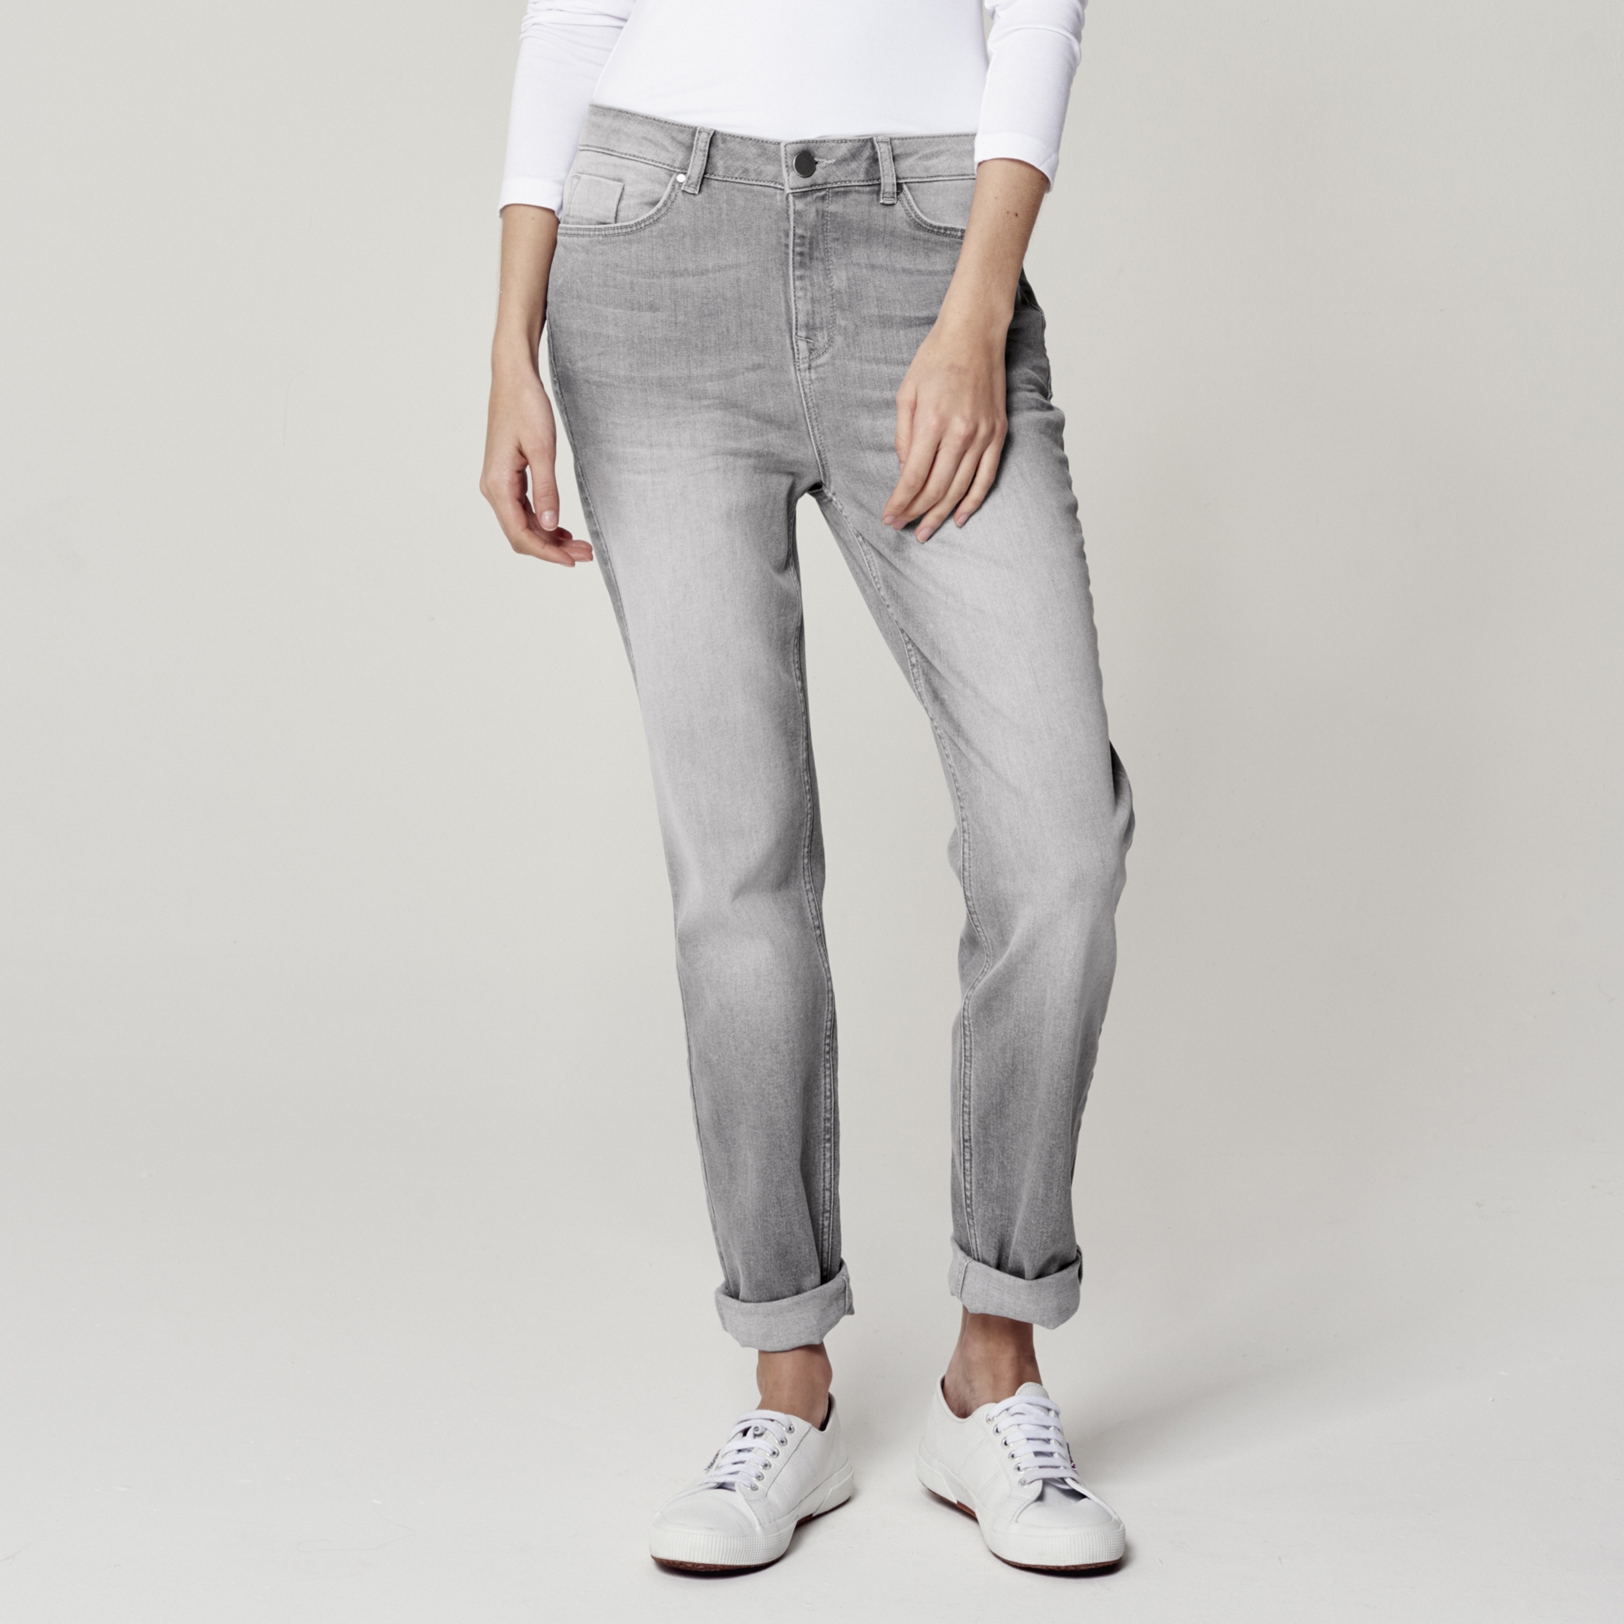 Jeans | Boyfriend & Skinny | The White Company UK